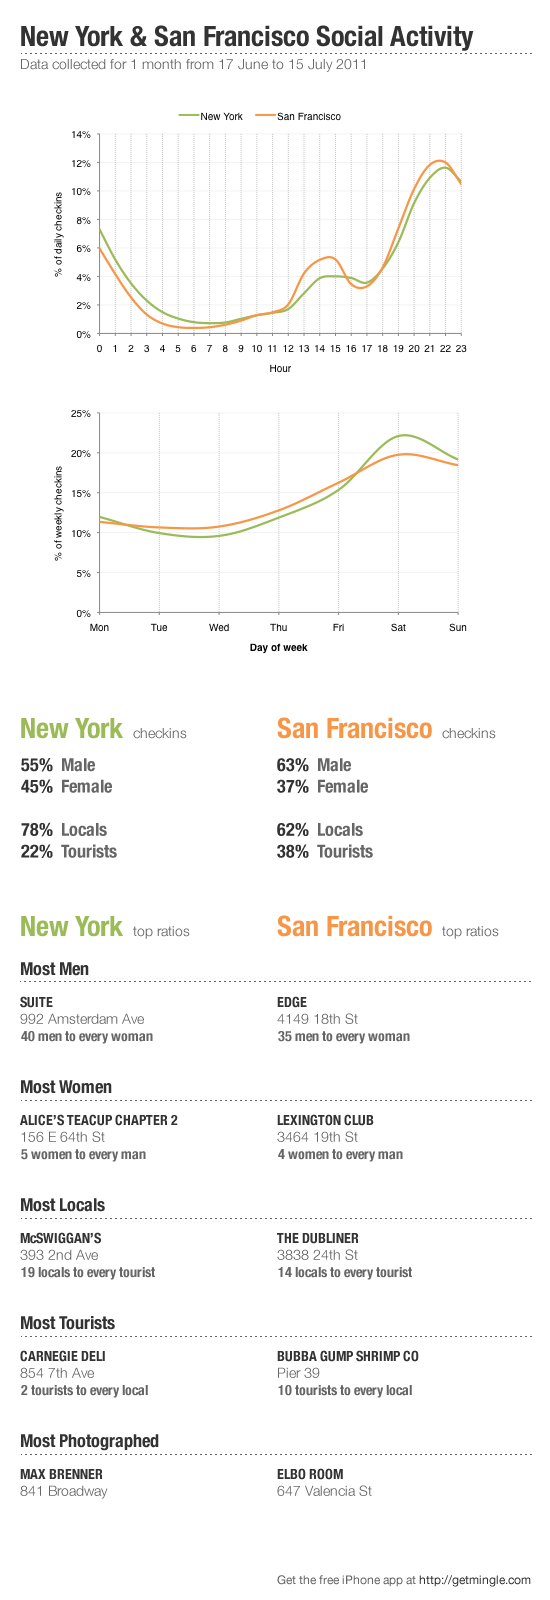 New York and San Francisco social activity data